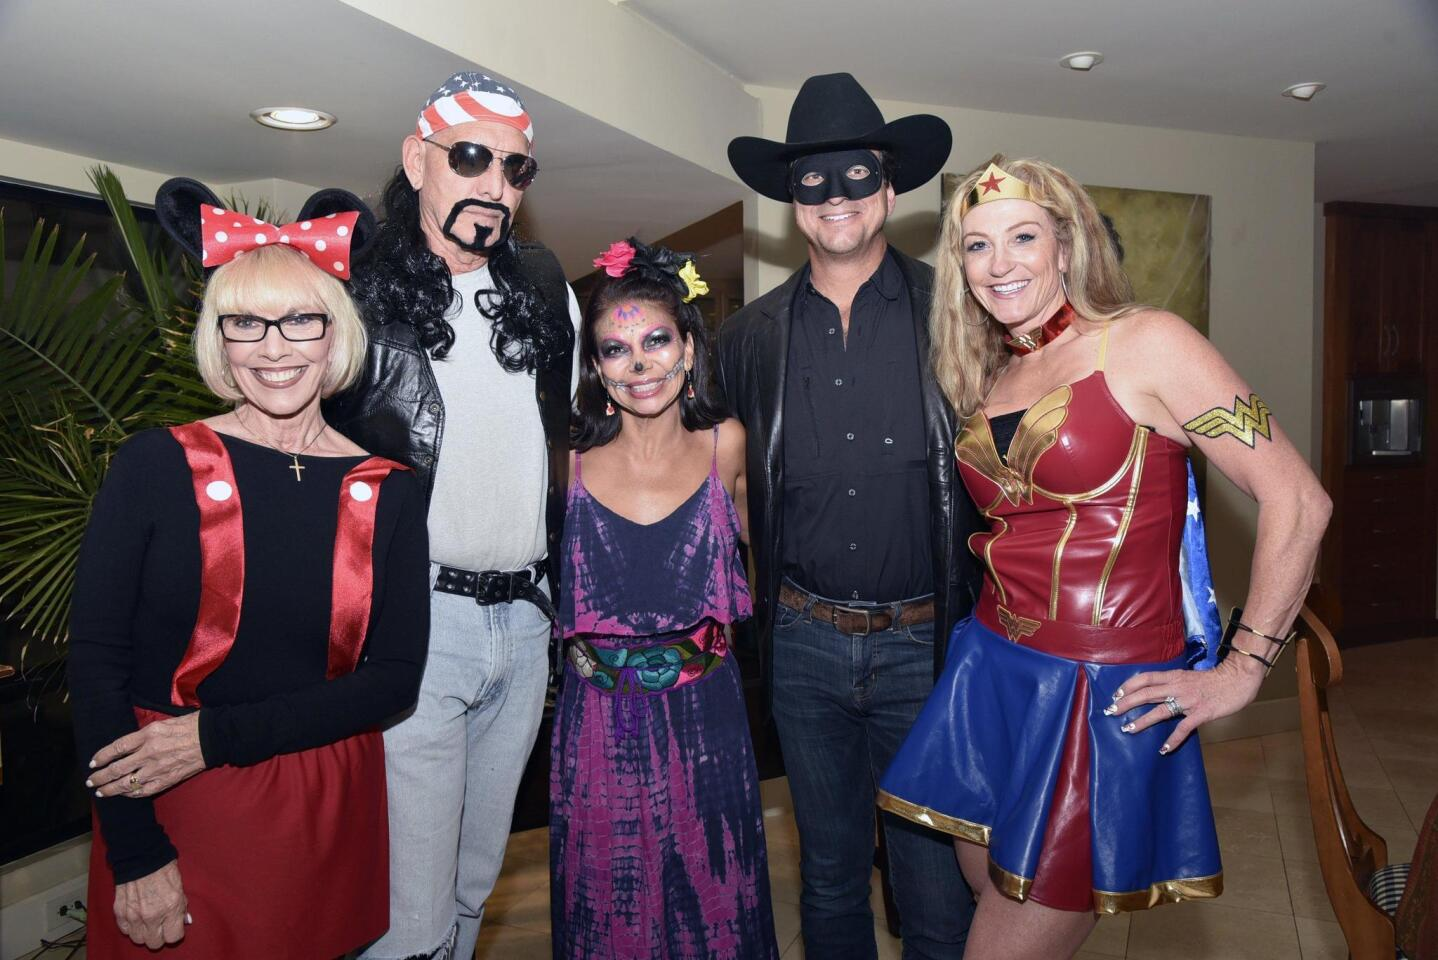 Rotary Assistant Governor Susan Callahan, Rotary President/Most Out of Character costume winner Mike Taylor, Angelica Rodriguez, Chris and Denise Korenek